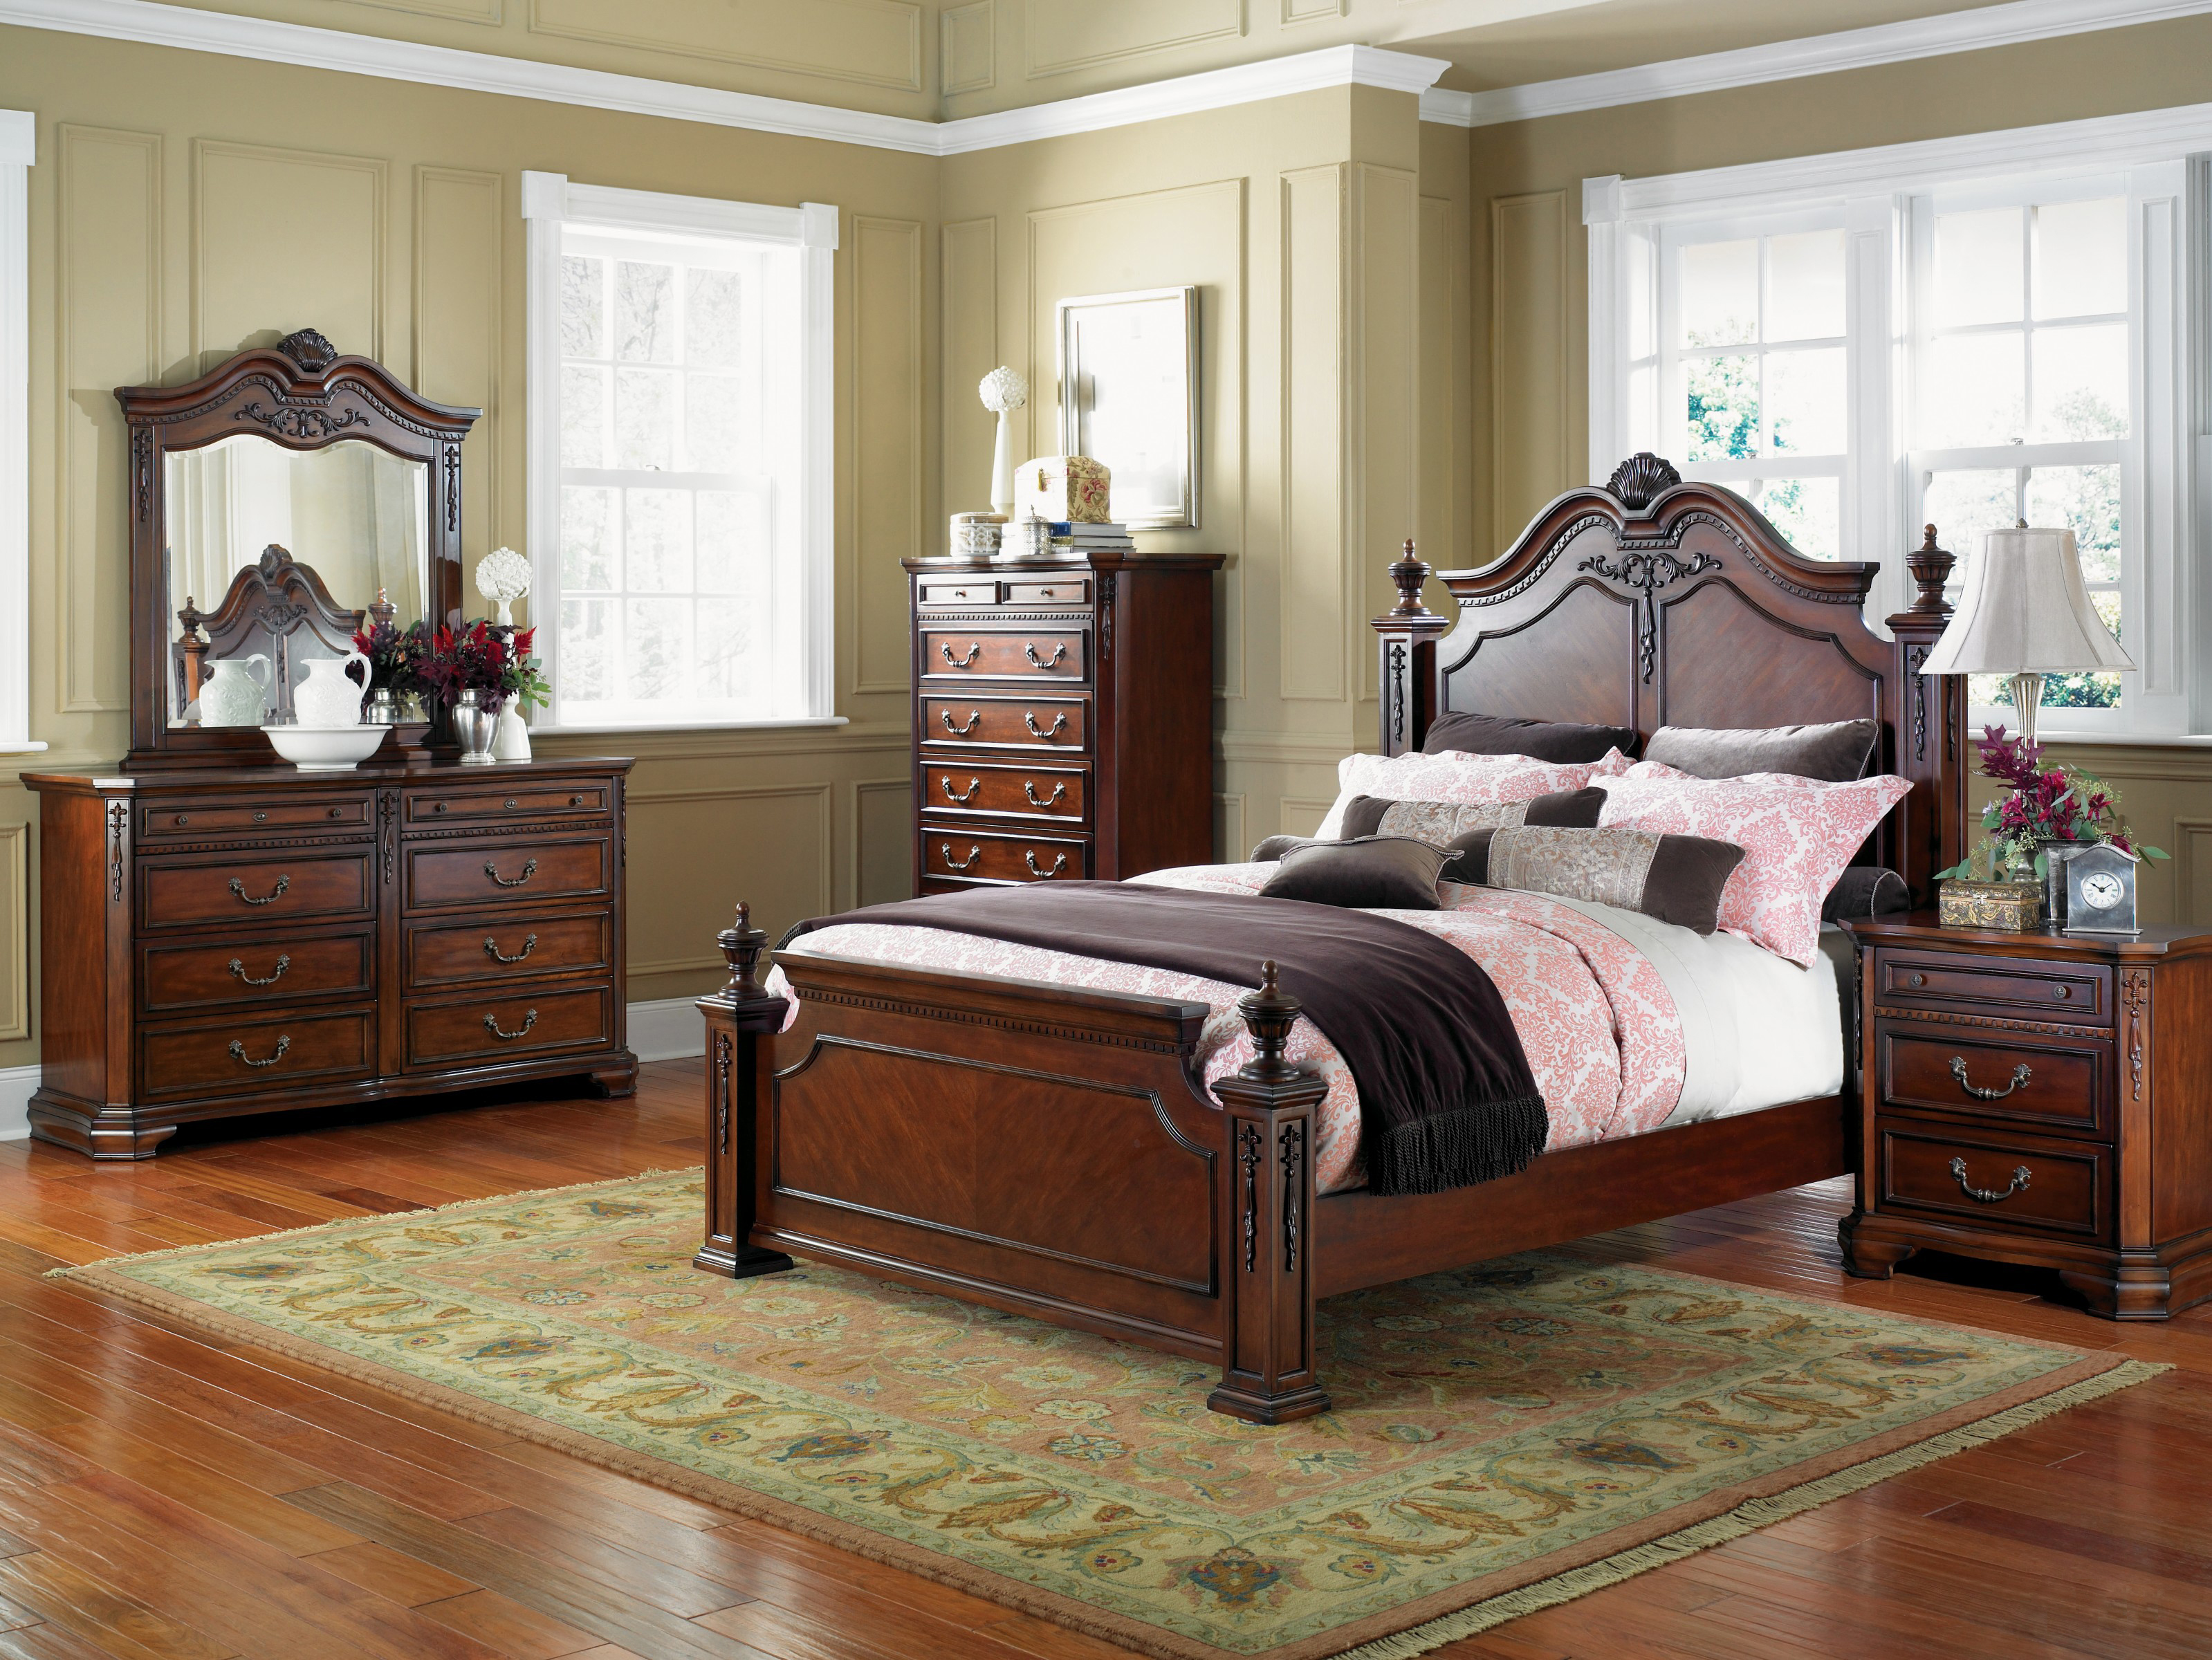 Bedroom Pics Prepossessing With Bedroom Furniture Picture